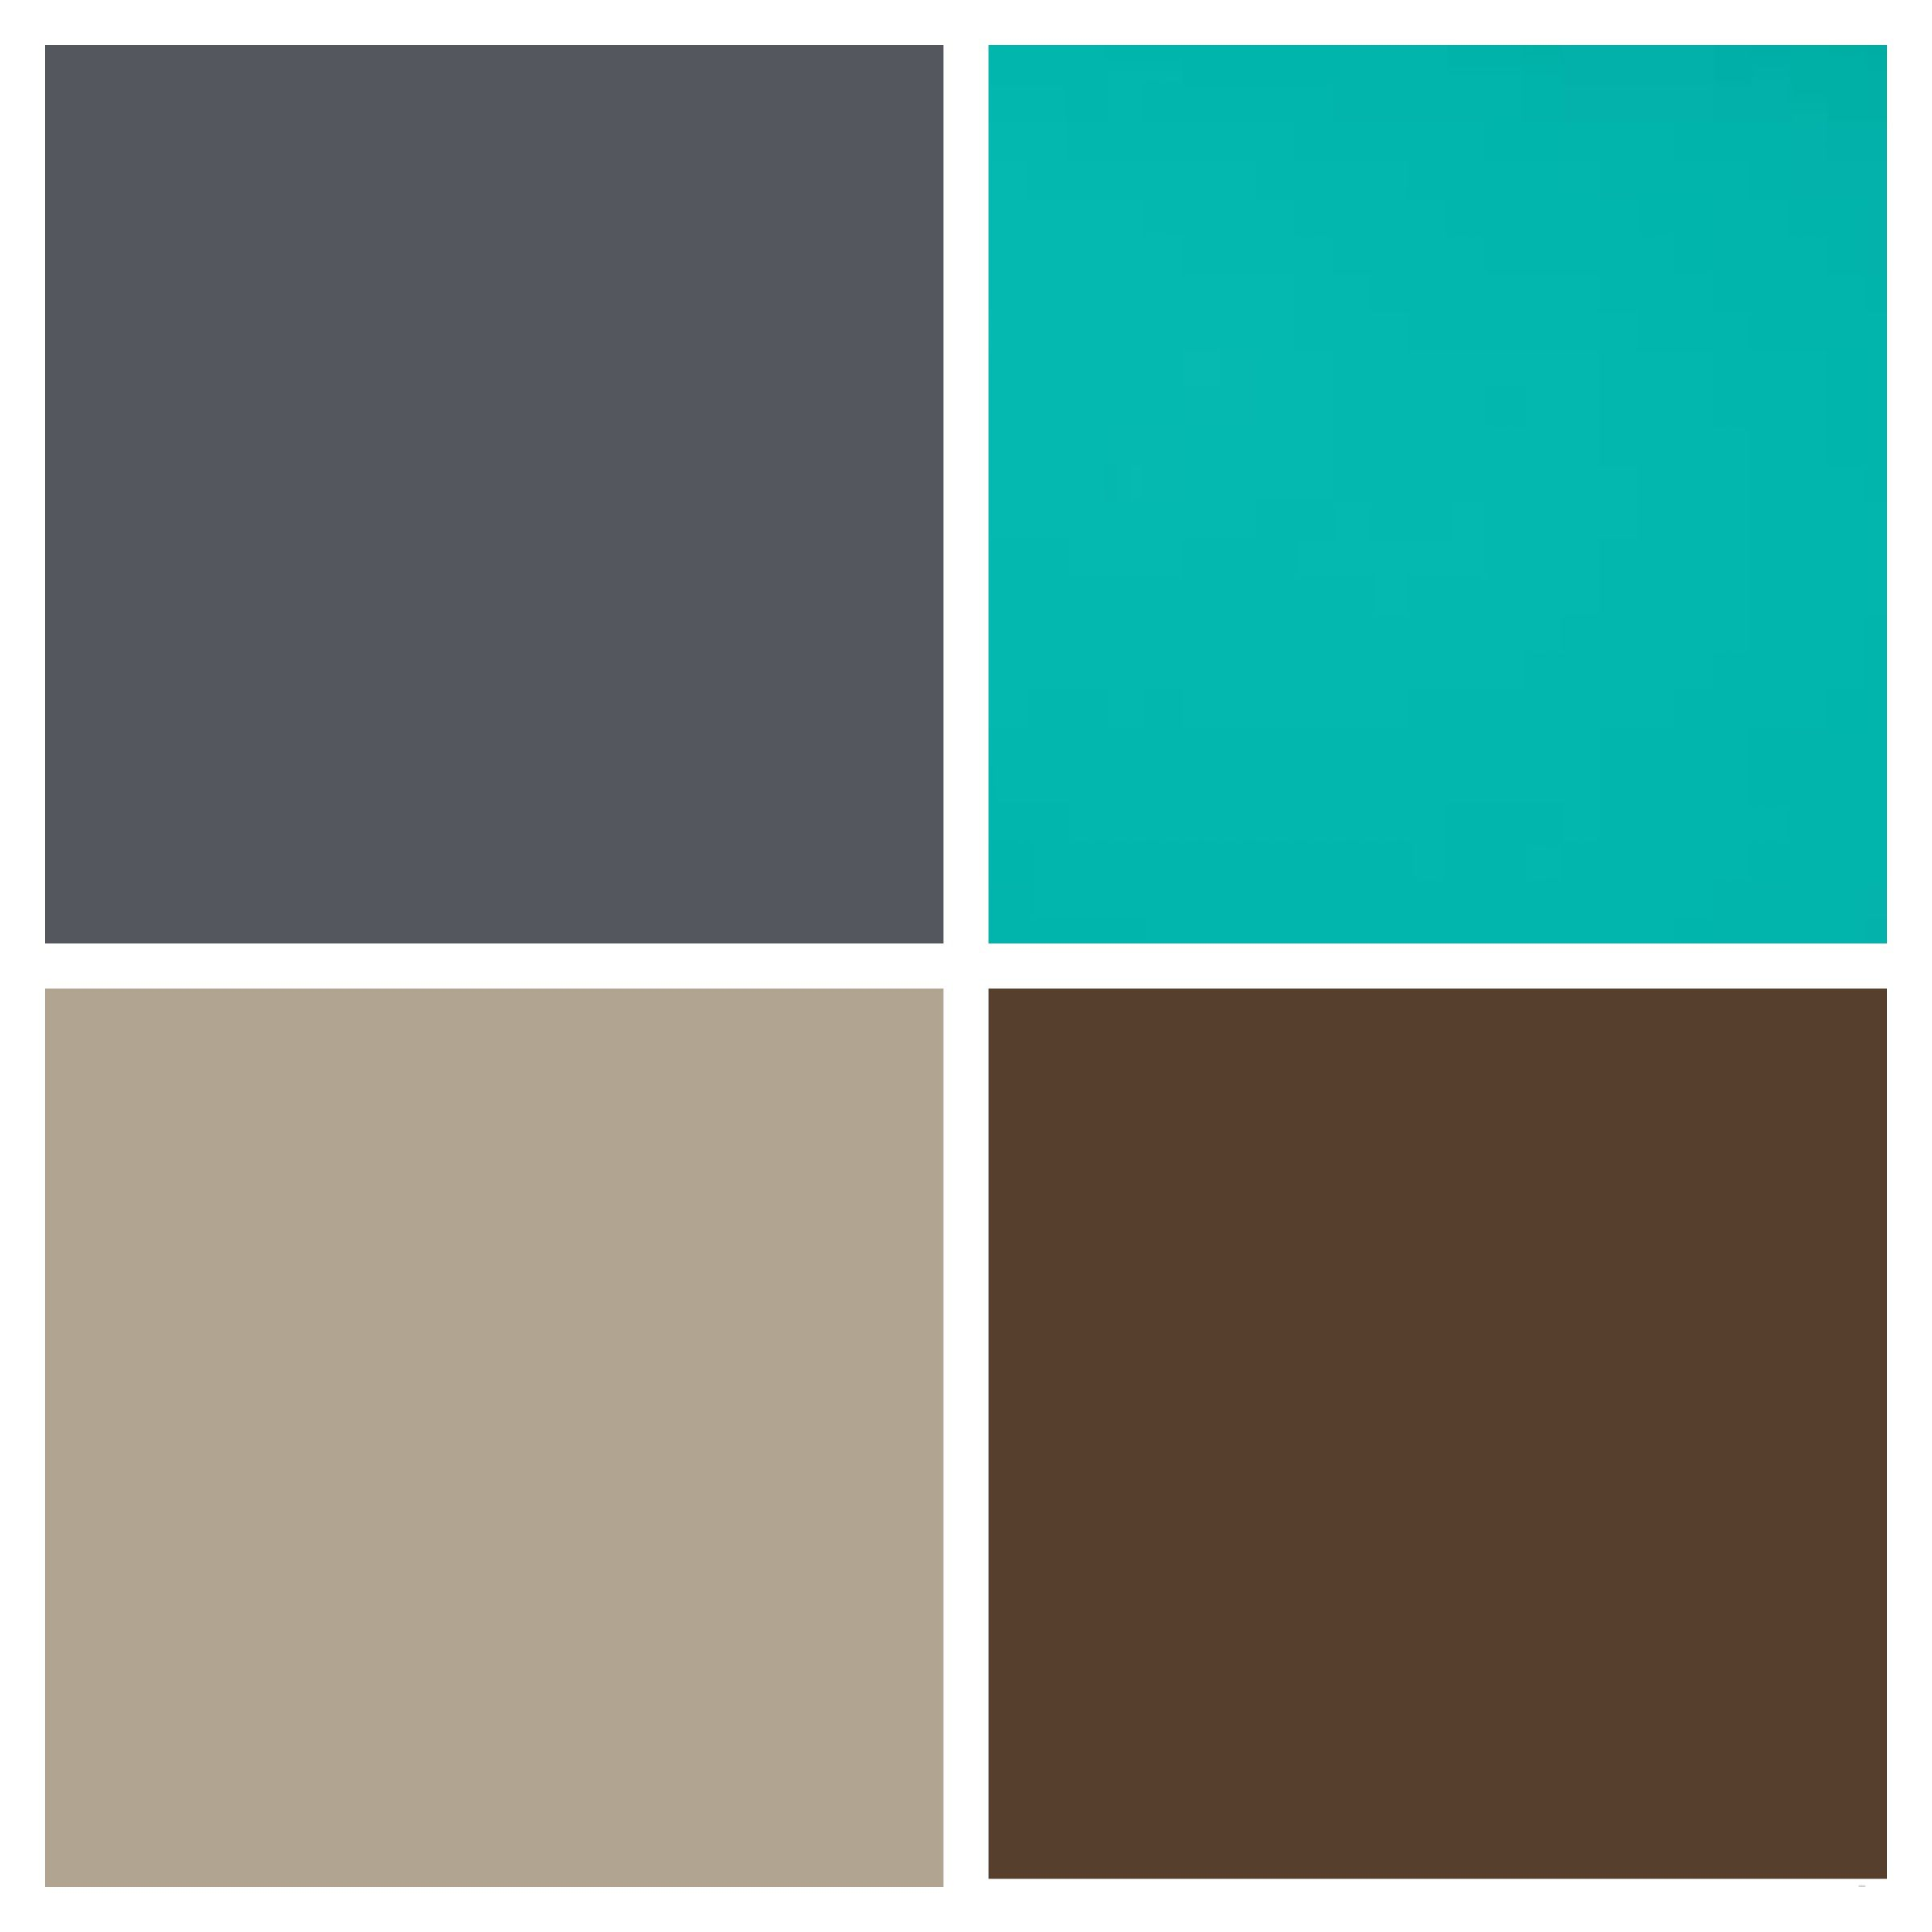 Bedroom Color Palette Slate Gray Storm Grey Turquoise Ocean Blue Beige Taupe Rich Brown Chocolate Neutral With Pops Of